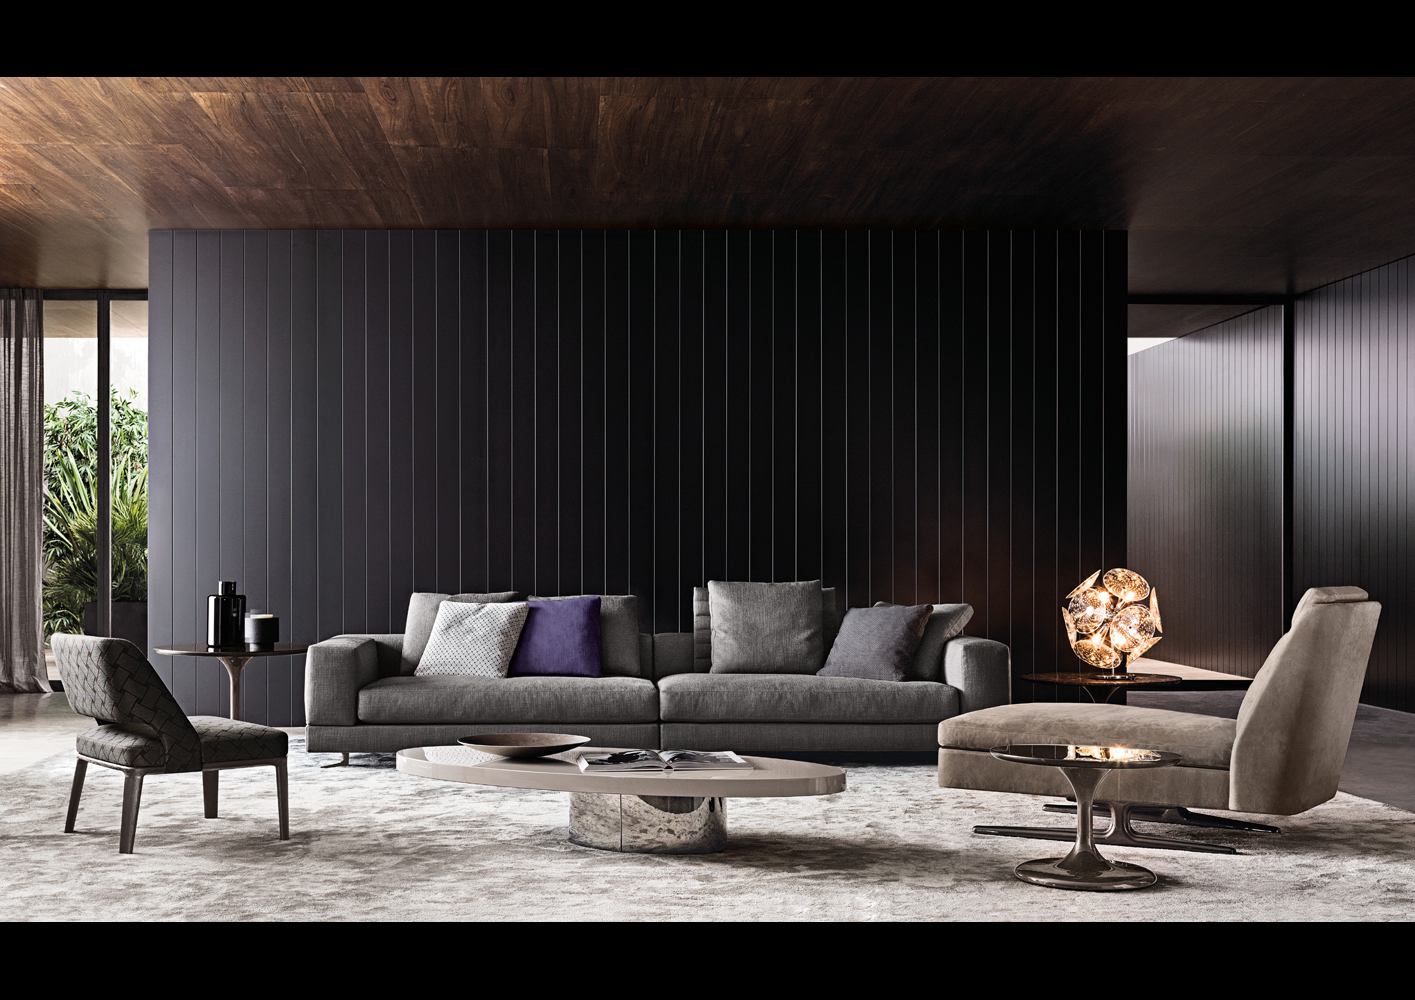 1000+ images about Furniture  Minotti on Pinterest